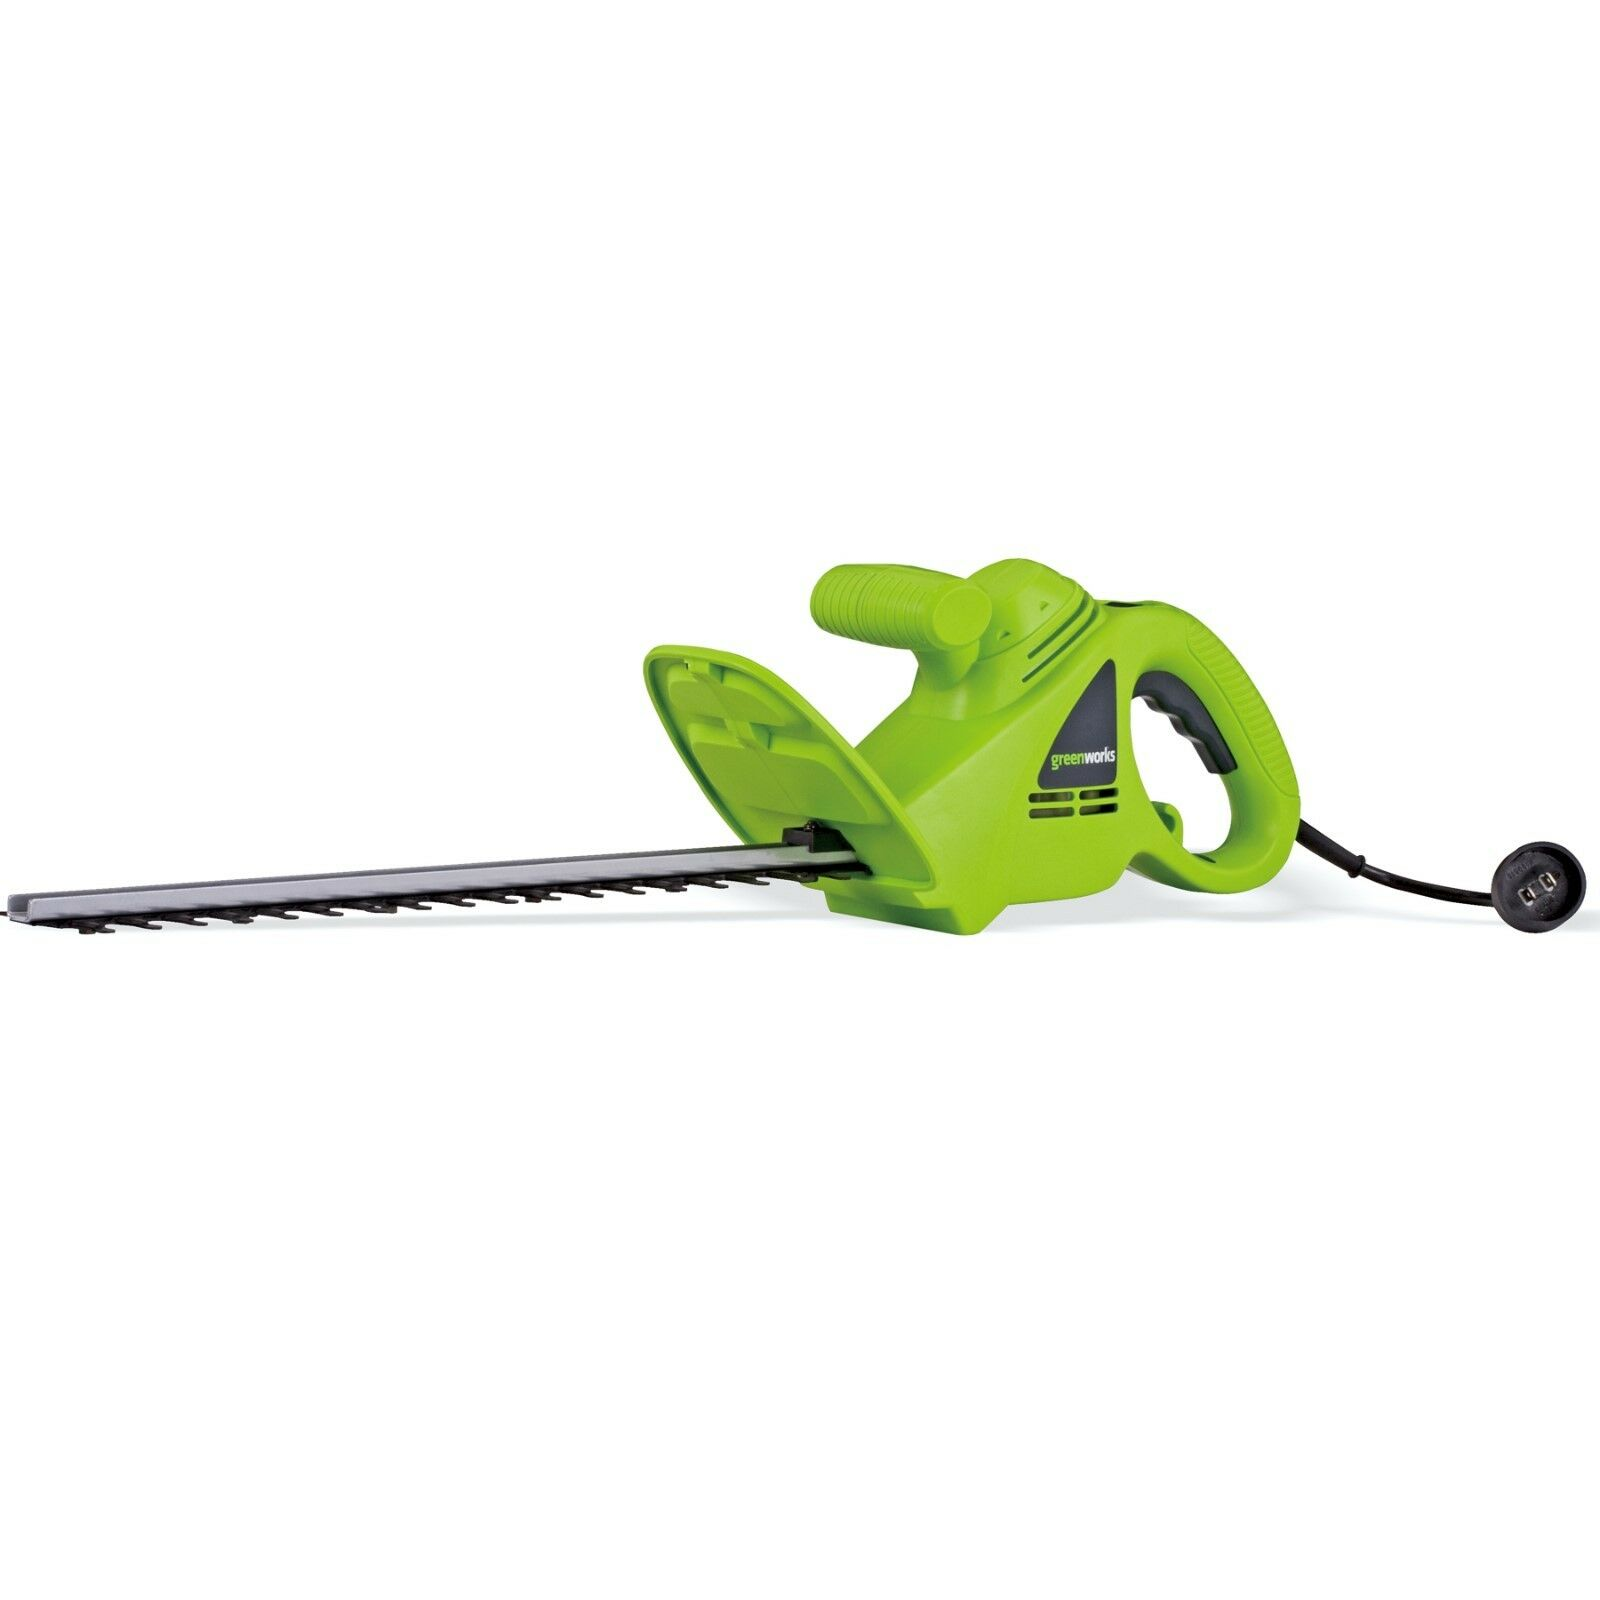 Greenworks 22102 2.7 Amp 18-in Dual Action Electric Hedge Tr